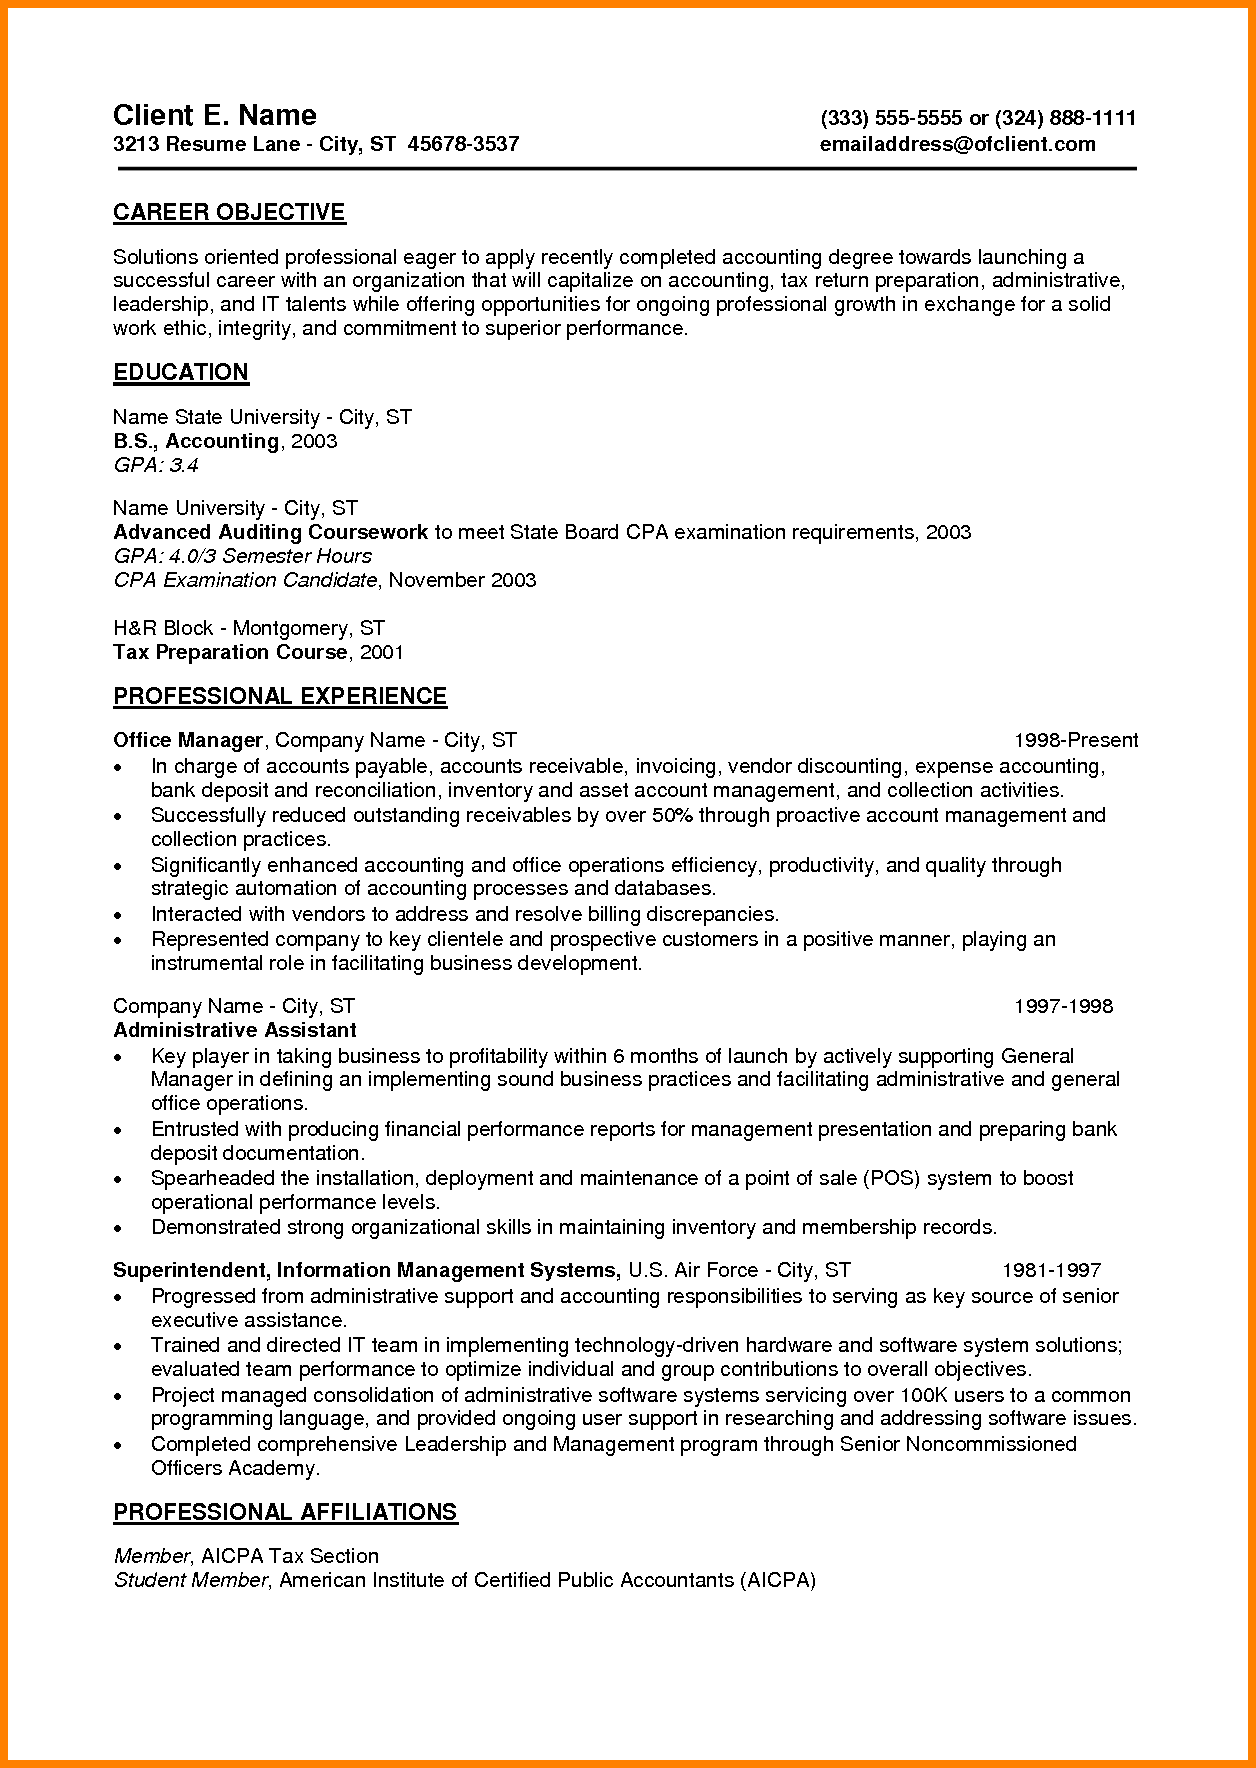 Summary Career Objective Qualifications Resume Example Samples